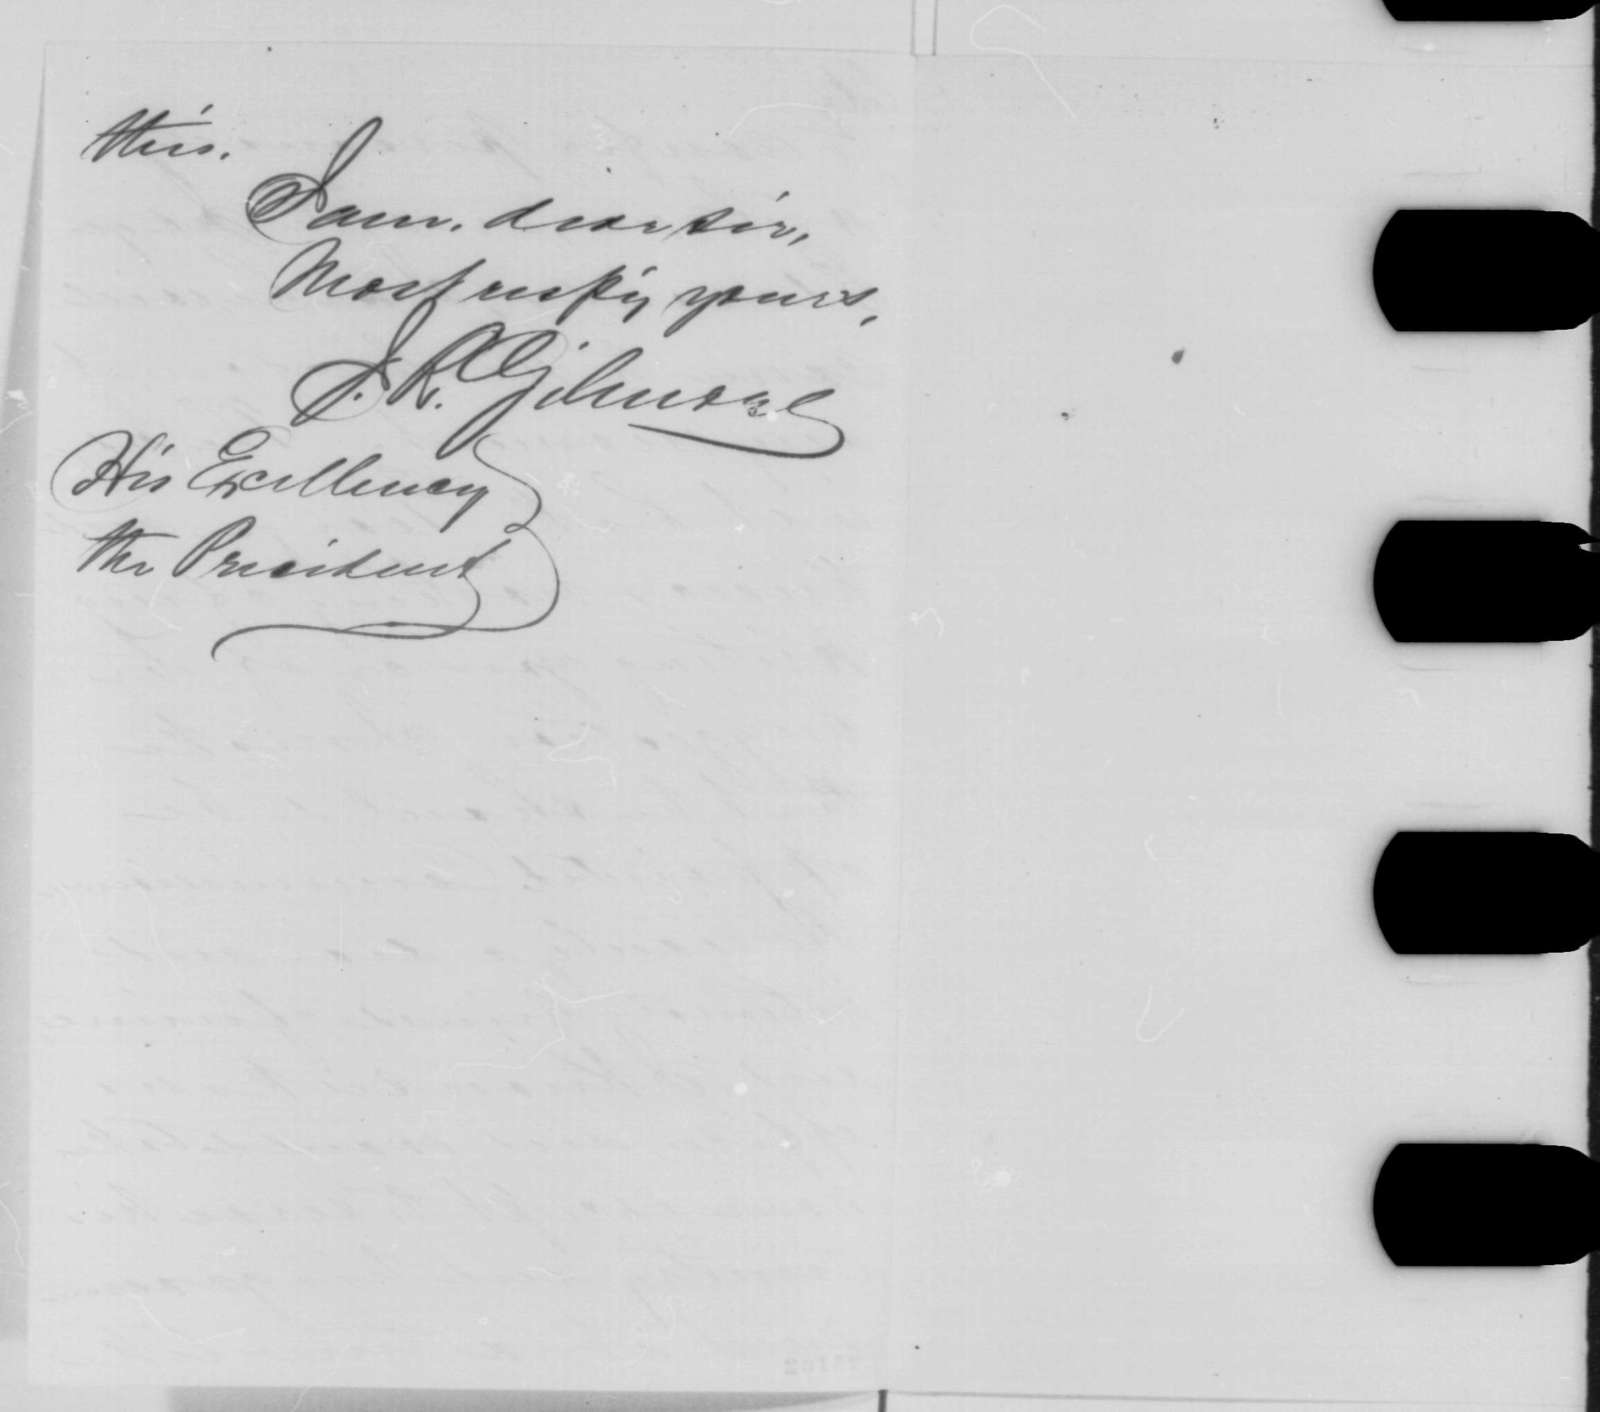 James R. Gilmore to Abraham Lincoln, Friday, July 24, 1863  (Investigation of New York draft riot)